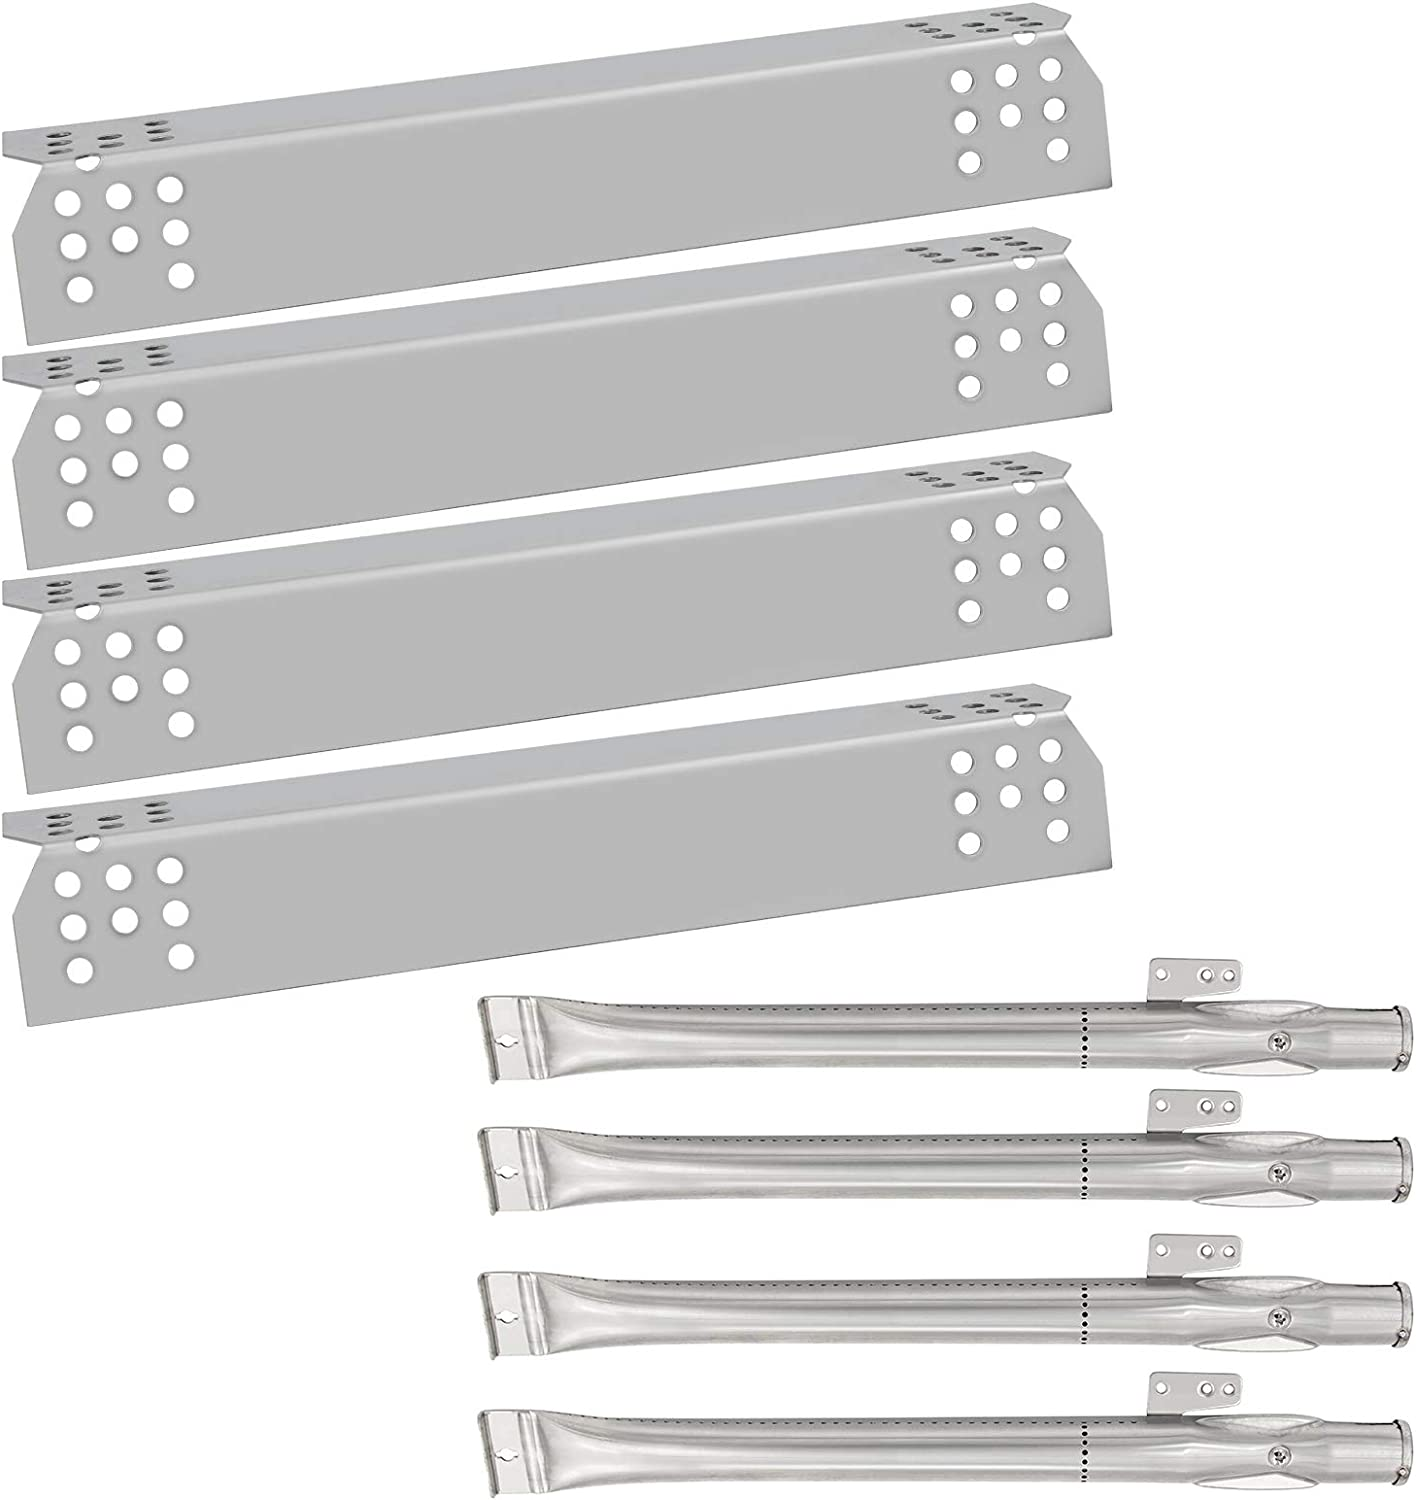 BoyoTec Grill Replacement Max 87% OFF Parts for Home Nexgrill Ranking TOP7 720-0830 Depot